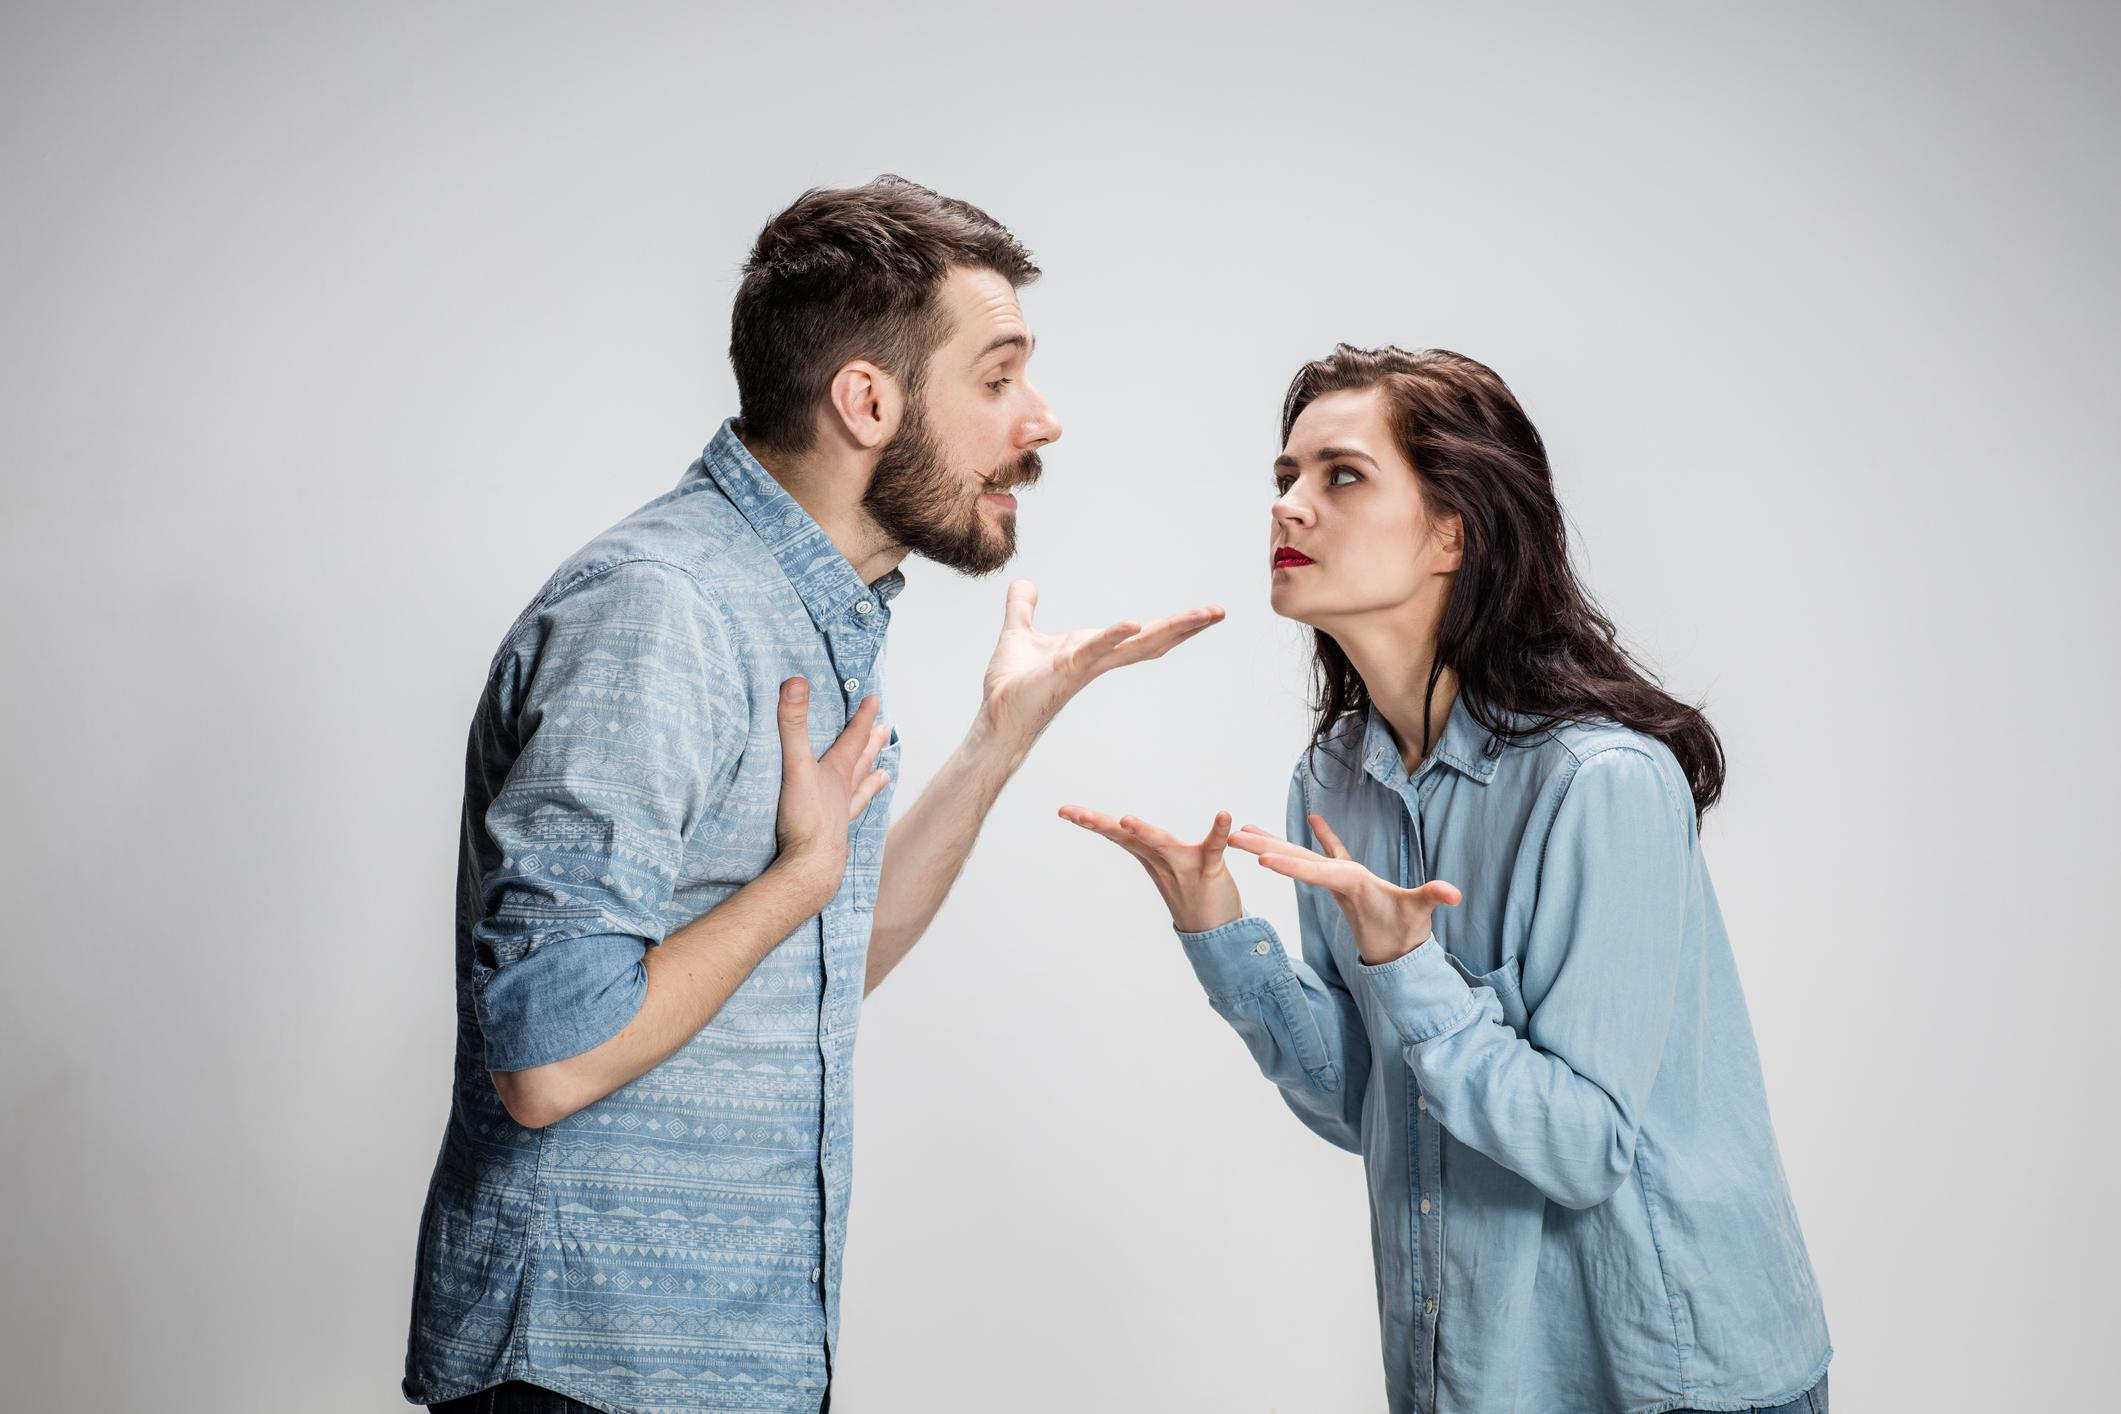 Relationships Can Benefit From Conflicts